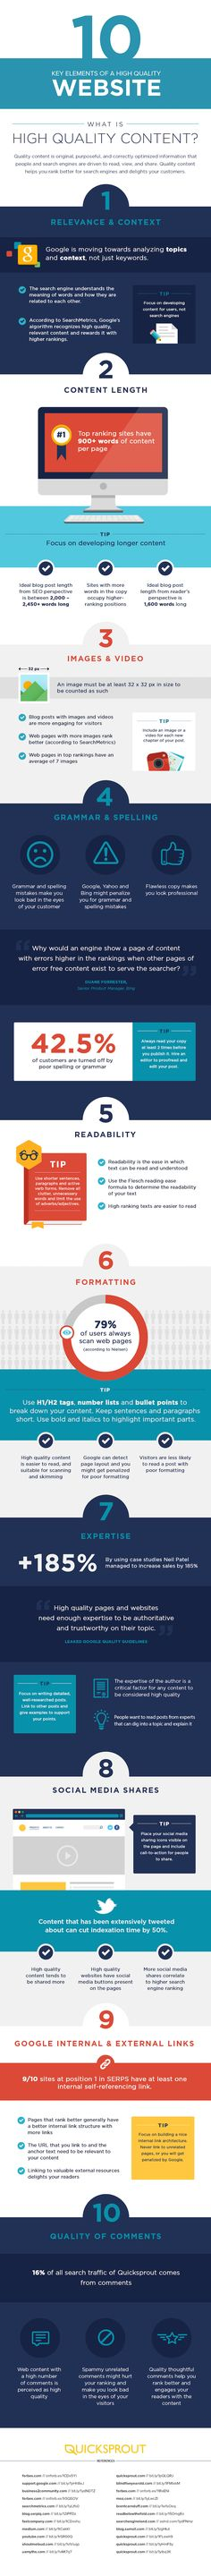 Ten Key Elements Of A Good Website (Infographic) - The Website Marketing Group Marketing Services, E-mail Marketing, Content Marketing, Internet Marketing, Online Marketing, Marketing Technology, Affiliate Marketing, Marketing Ideas, Business Marketing